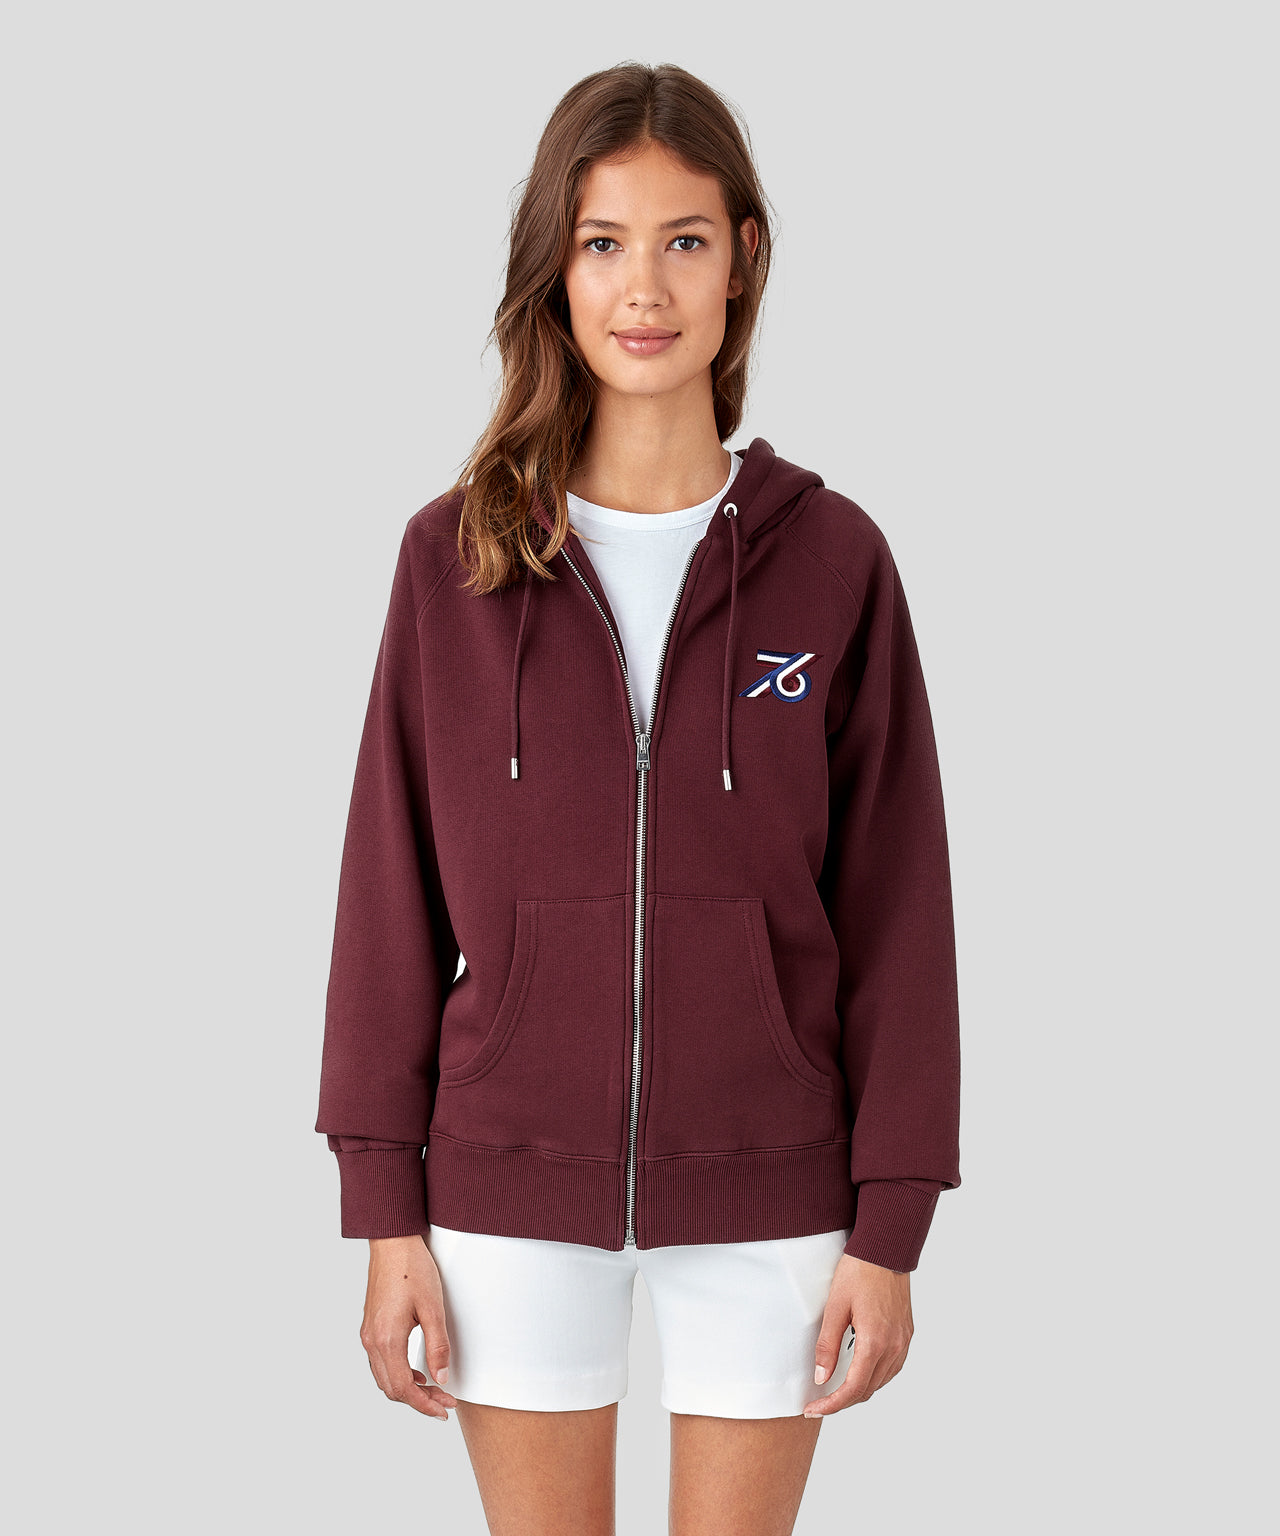 Zipped Hoodie 76 His For Her - burgundy red